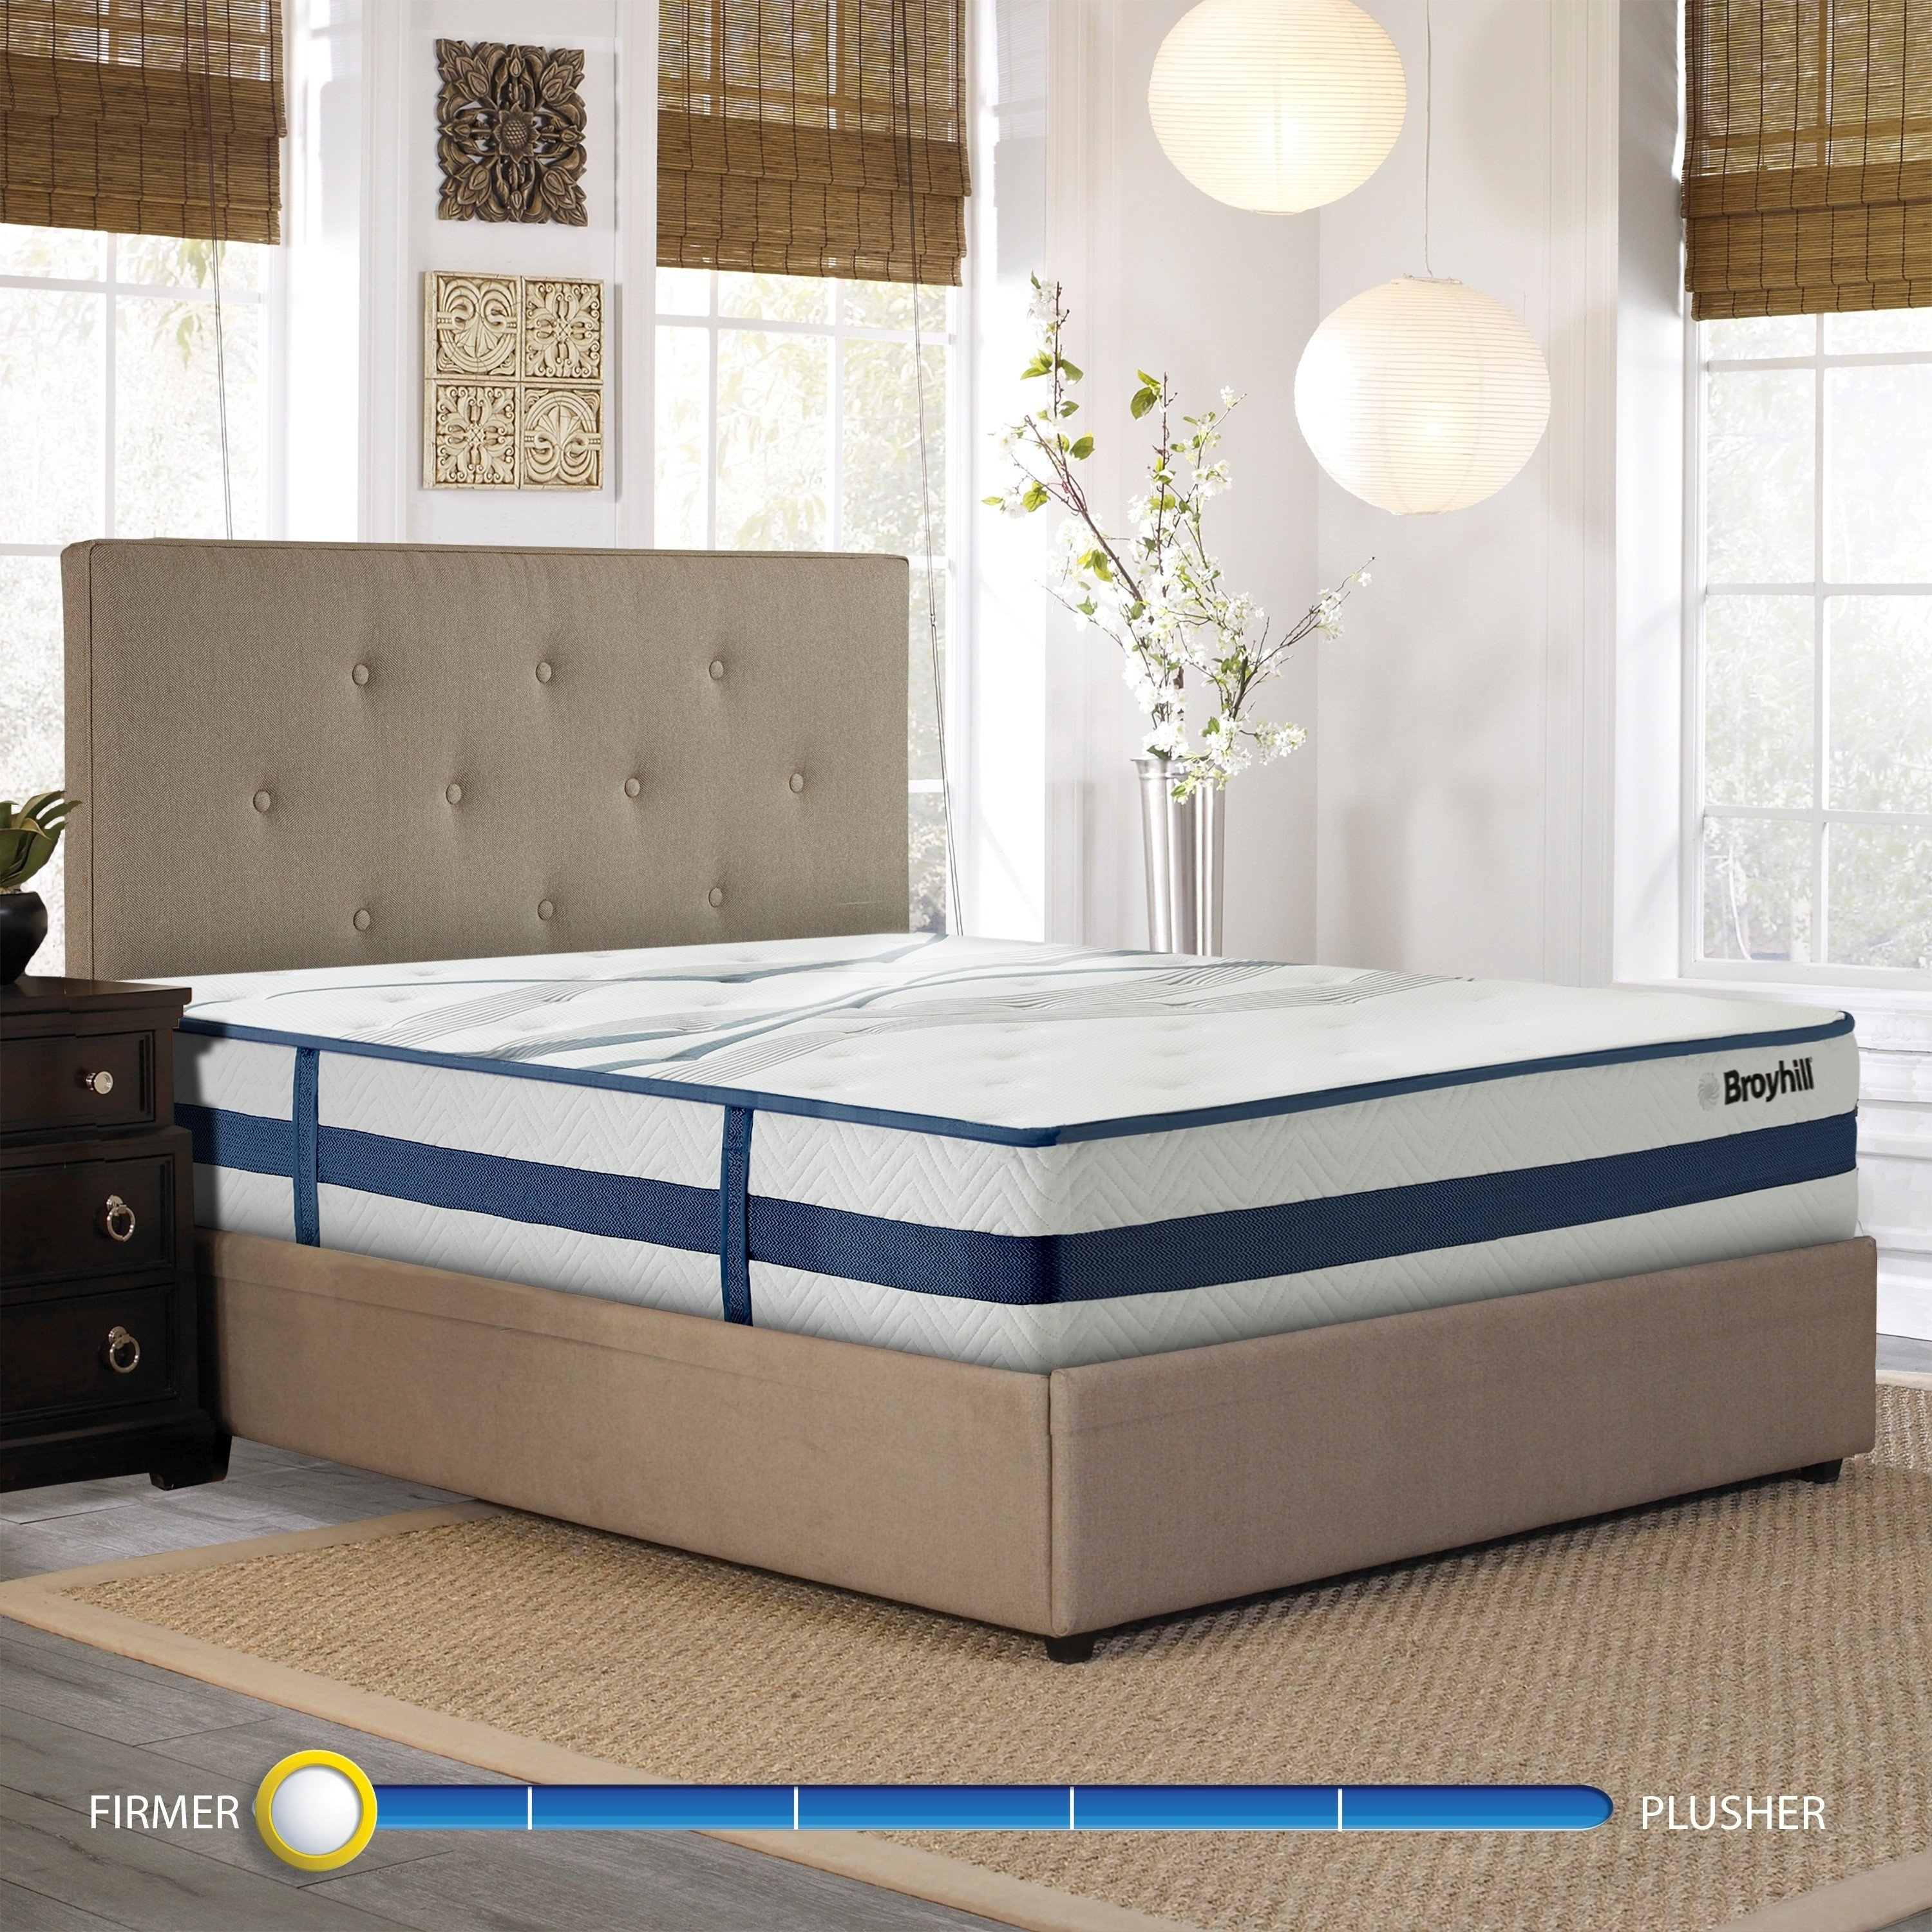 Bedroom Set with Mattress Included Fresh Broyhill Natural Spring Sapphire Earl 11 Inch Firm Cooling Hybrid Mattress